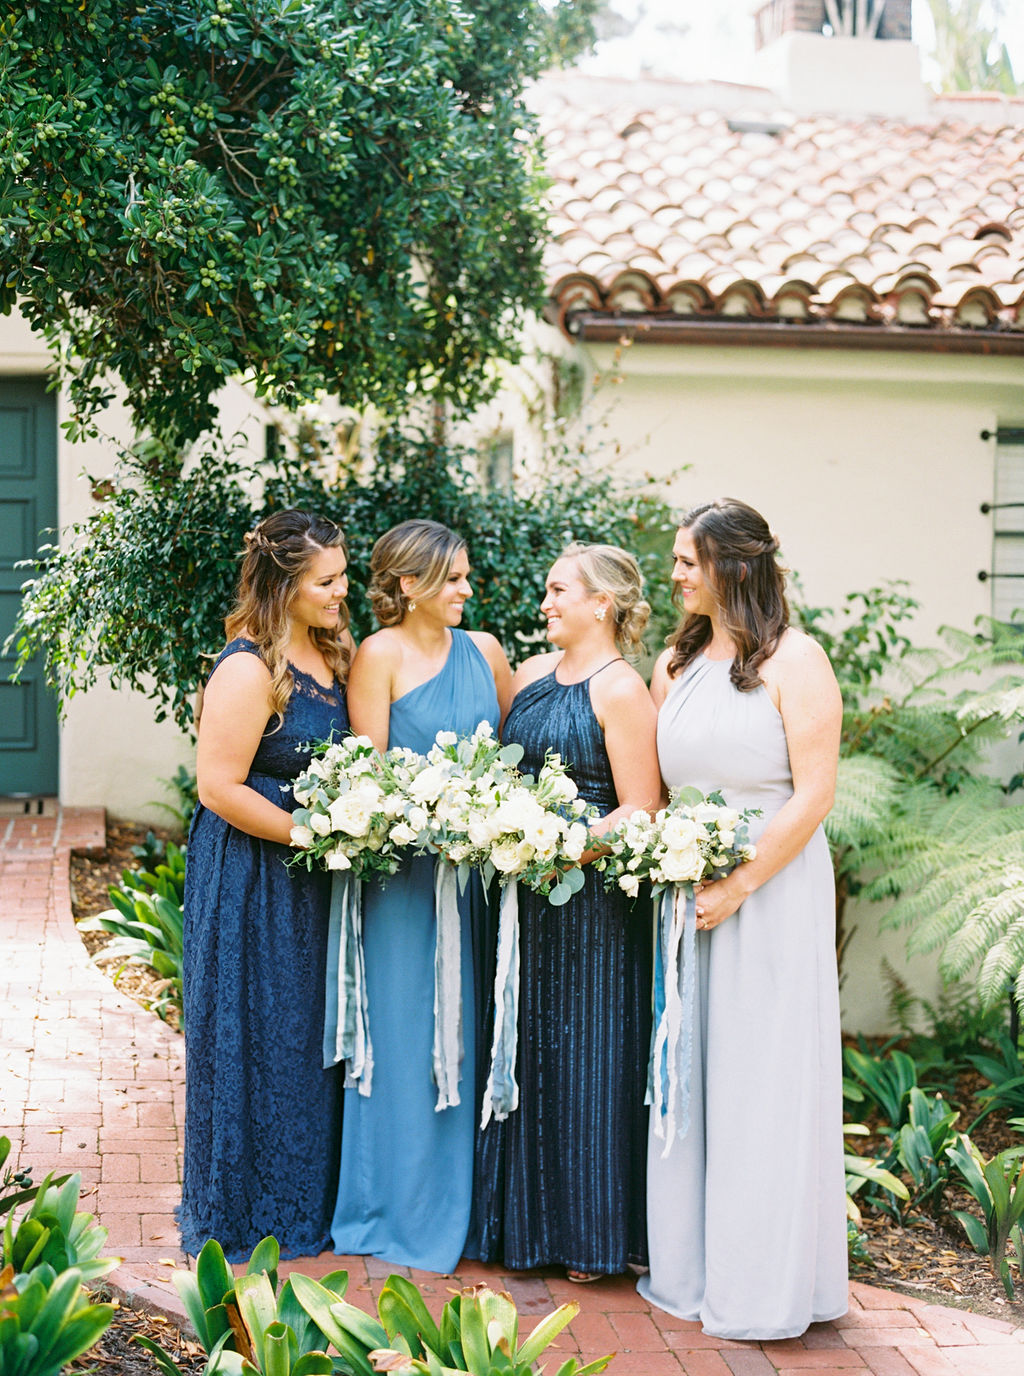 white bridesmaids bouquets.JPG